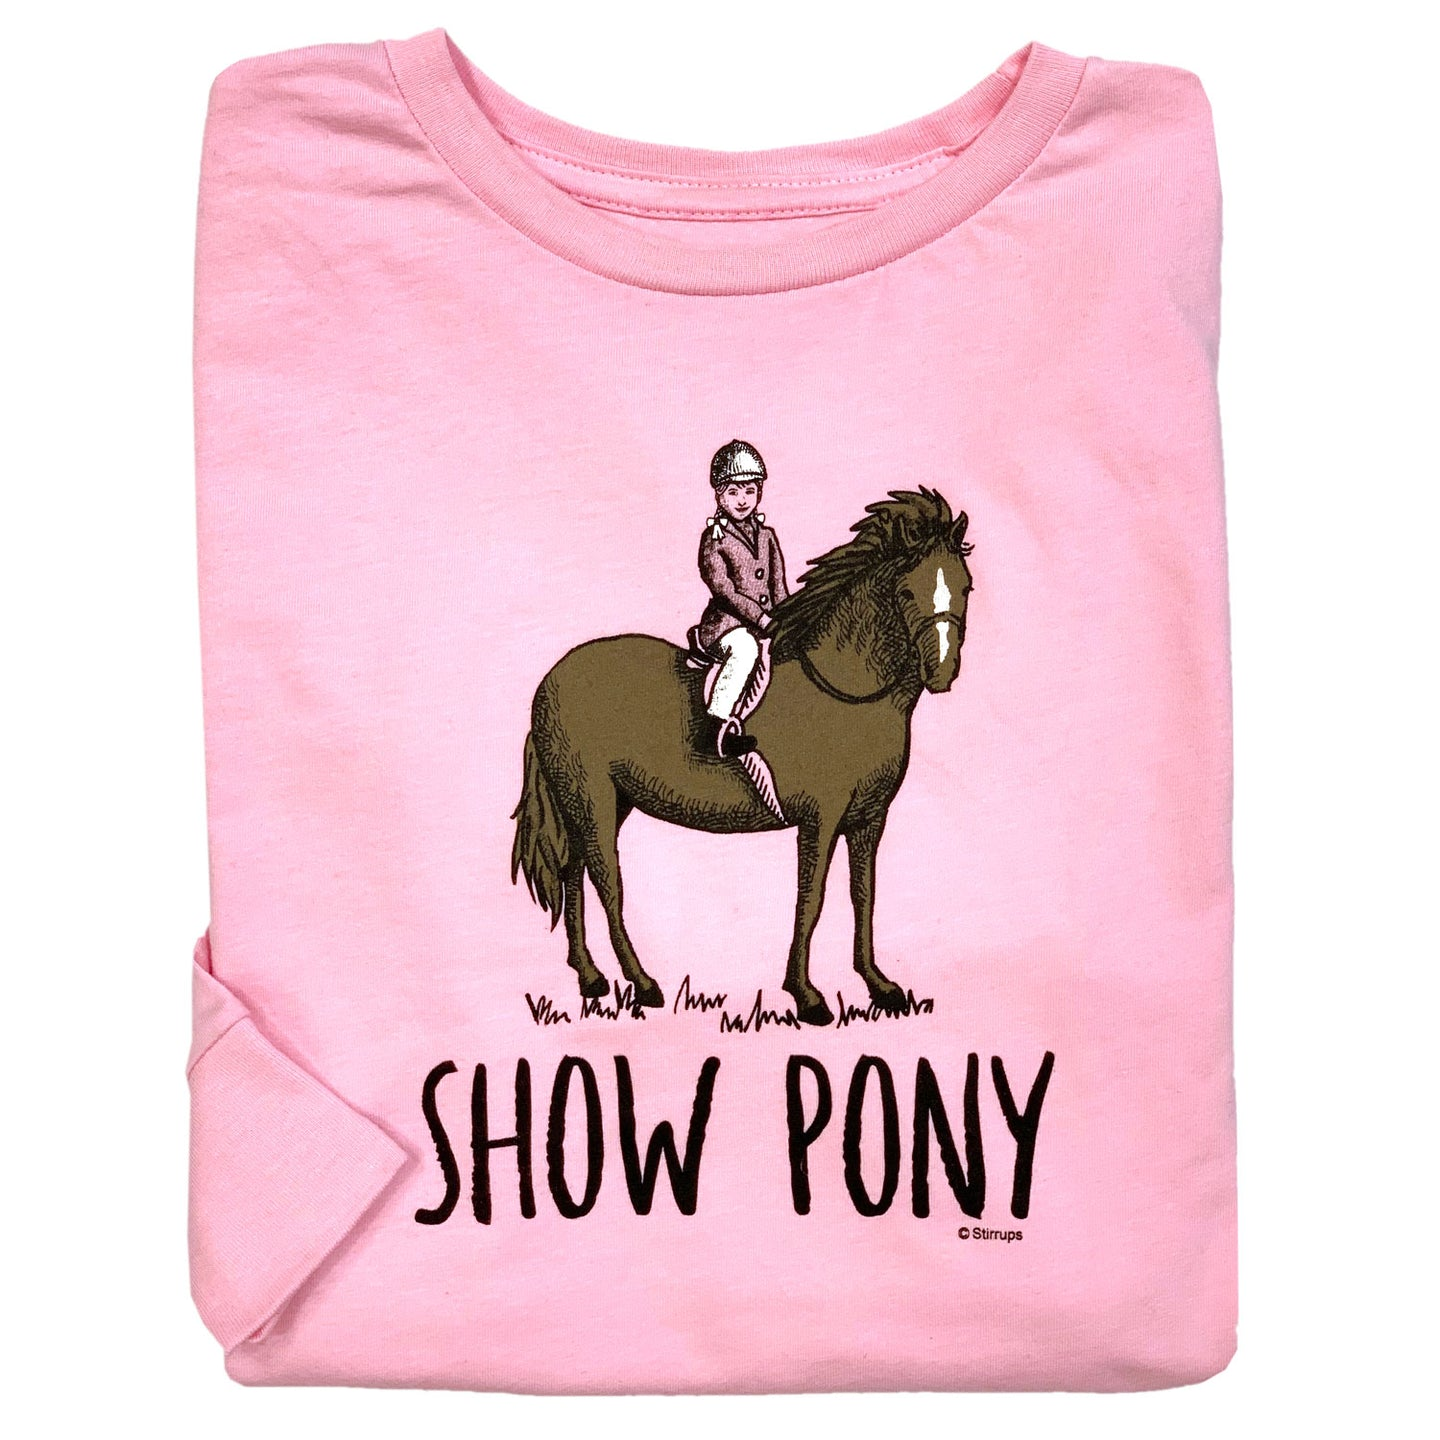 Show Pony Youth Long Sleeve Tee 19596